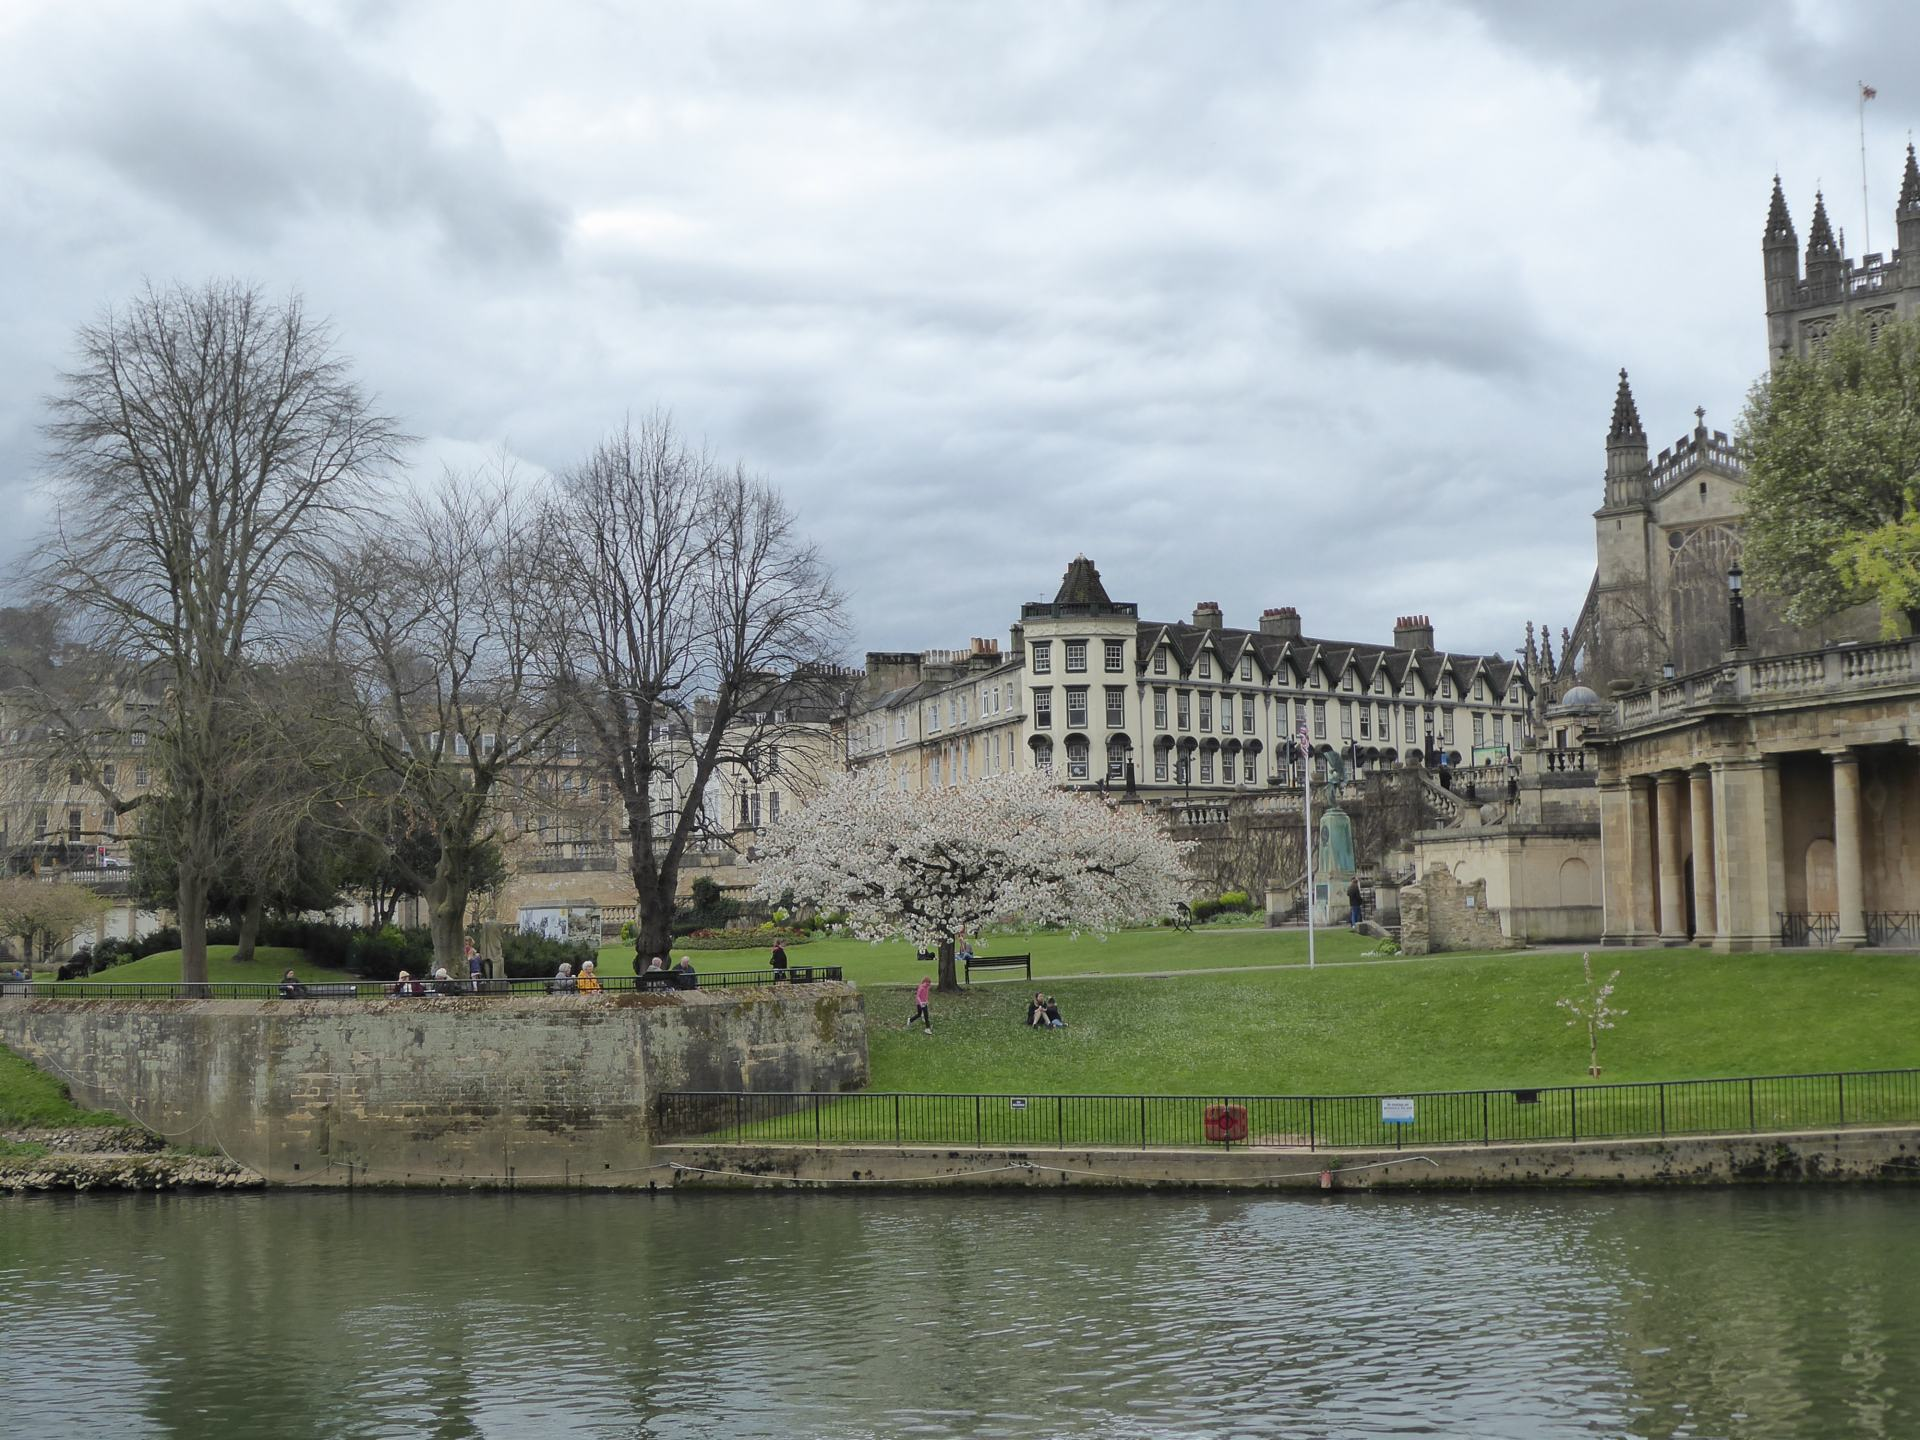 A view across water of part of Parade gardens. showing grass and tree's, with Bath Abbey and other building sin the background.